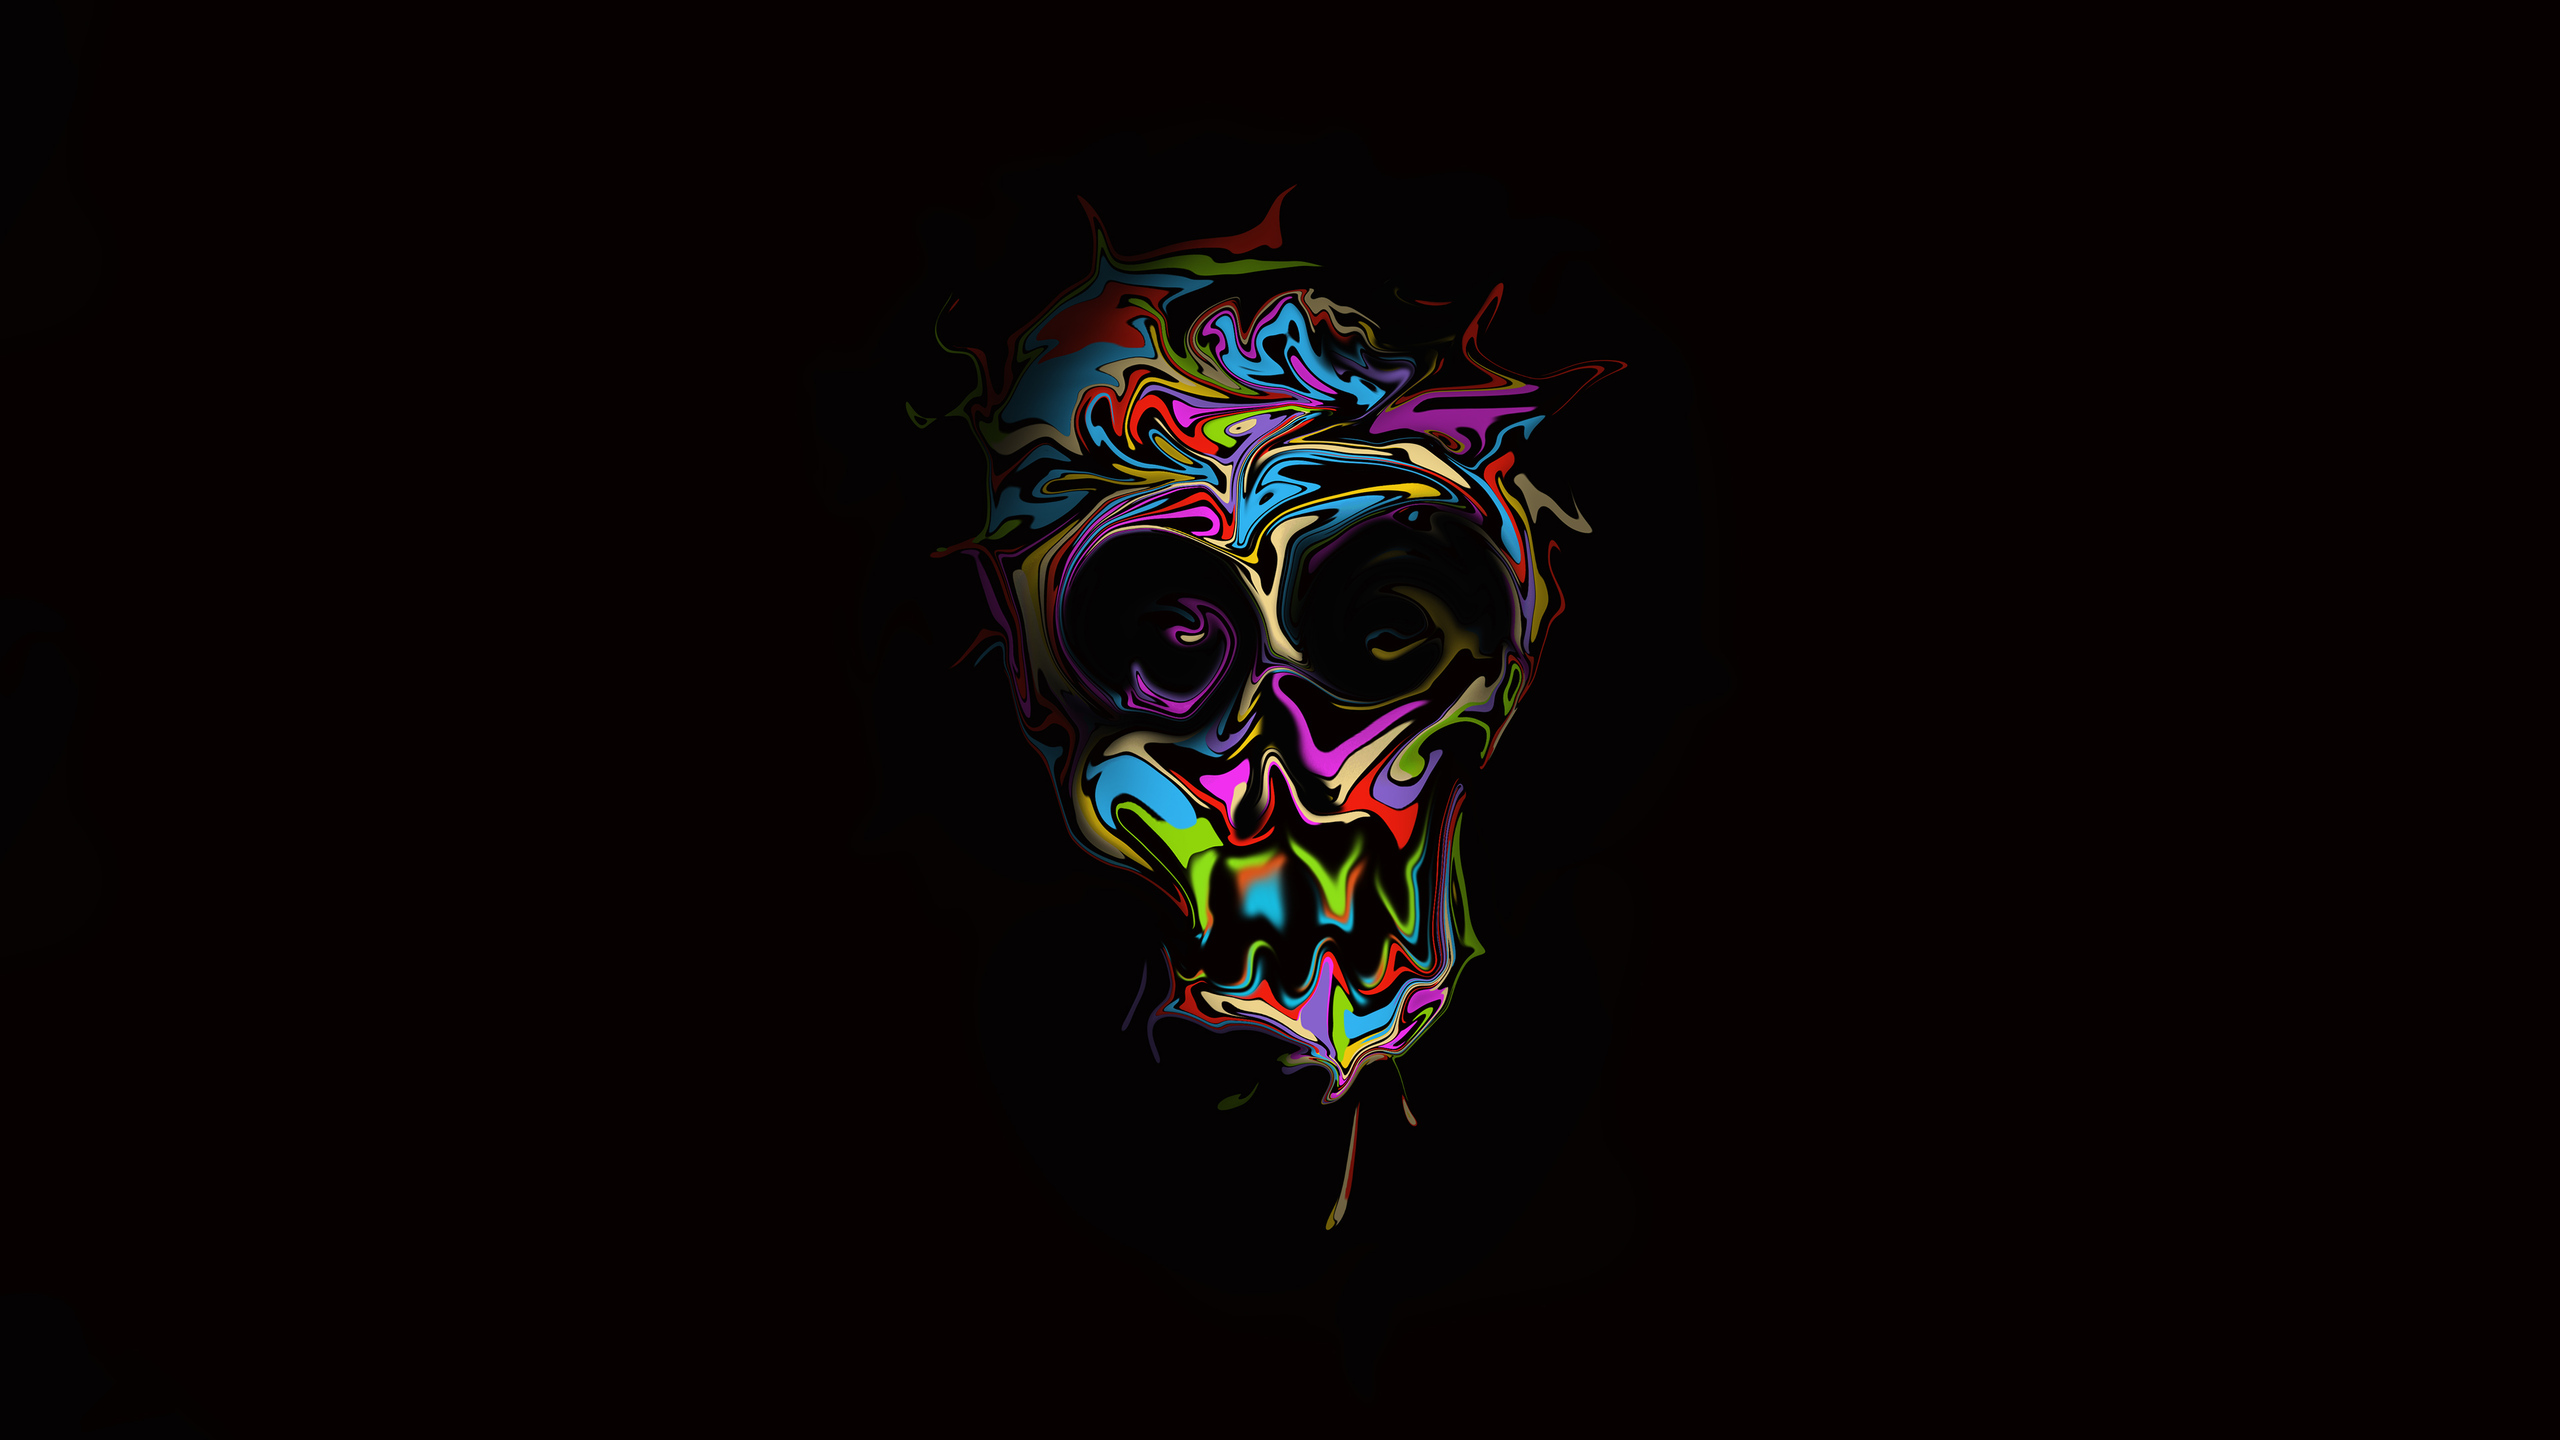 2560x1440 Colorful Skull Dark Art 4k 1440p Resolution Hd 4k Wallpapers Images Backgrounds Photos And Pictures